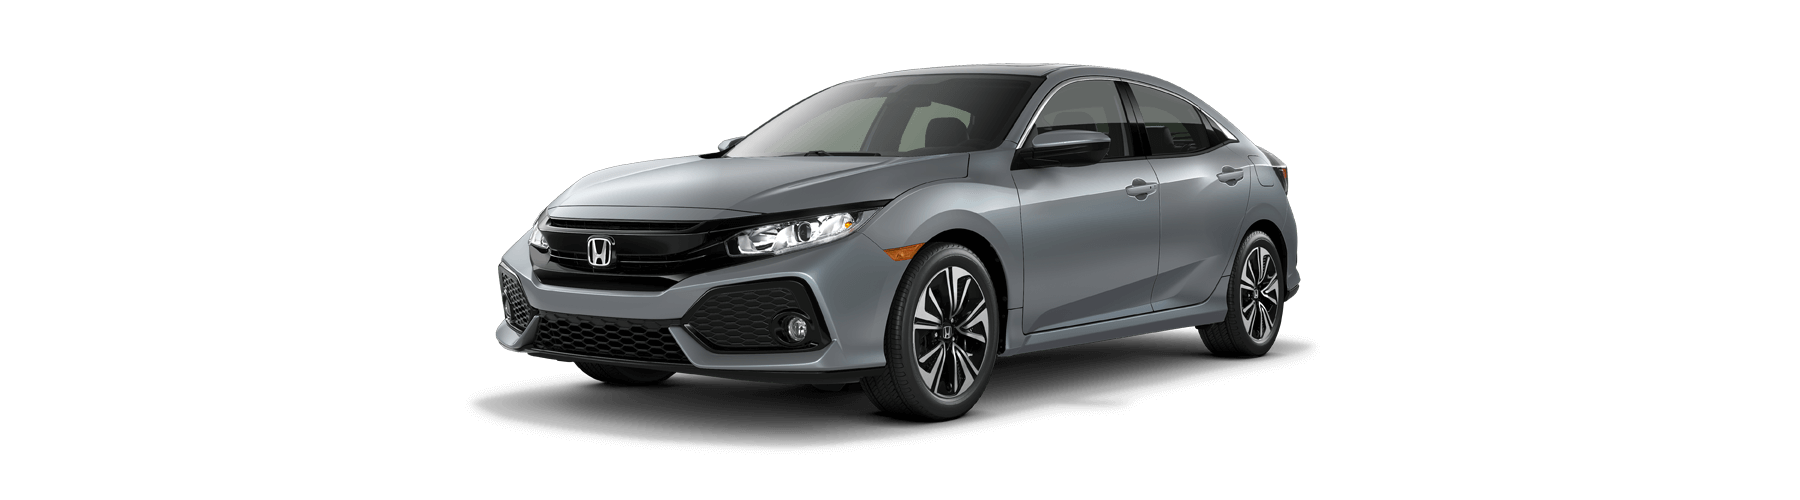 2017 Honda Civic Hatchback Front Angle